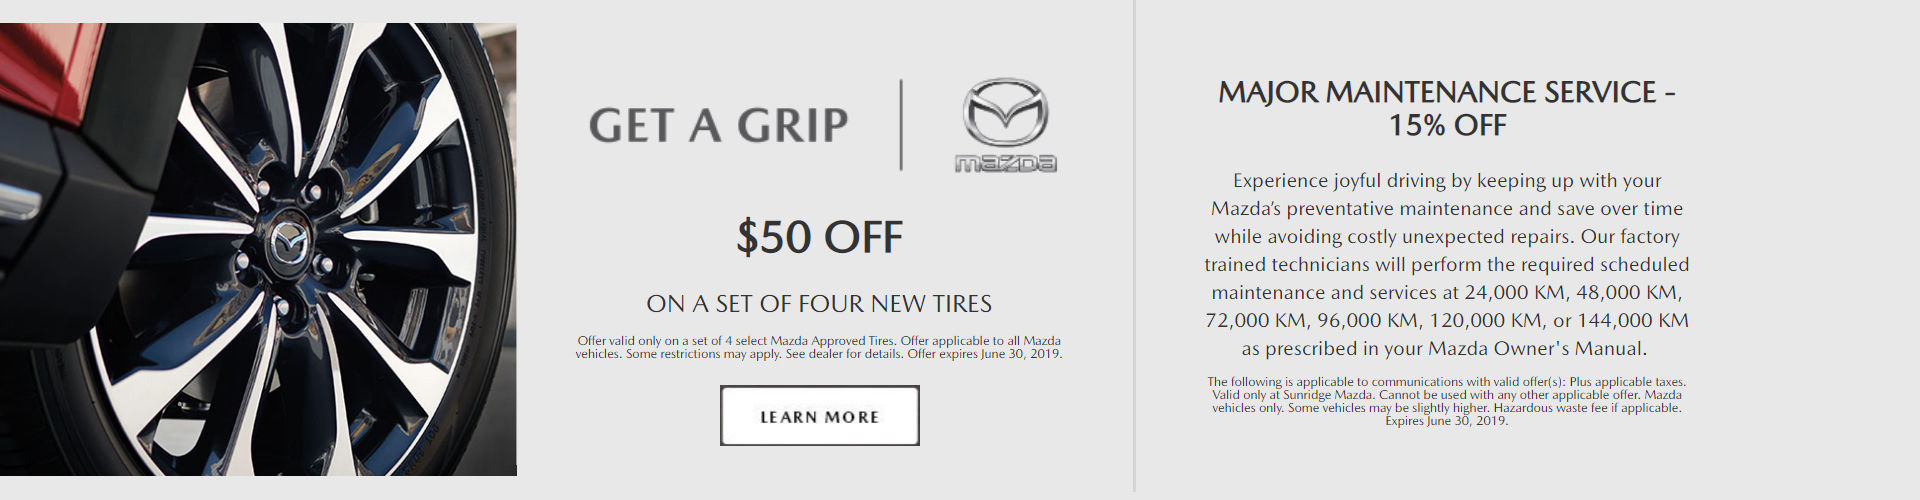 Get $50 Off Tires and 15% Off Major Maintenance